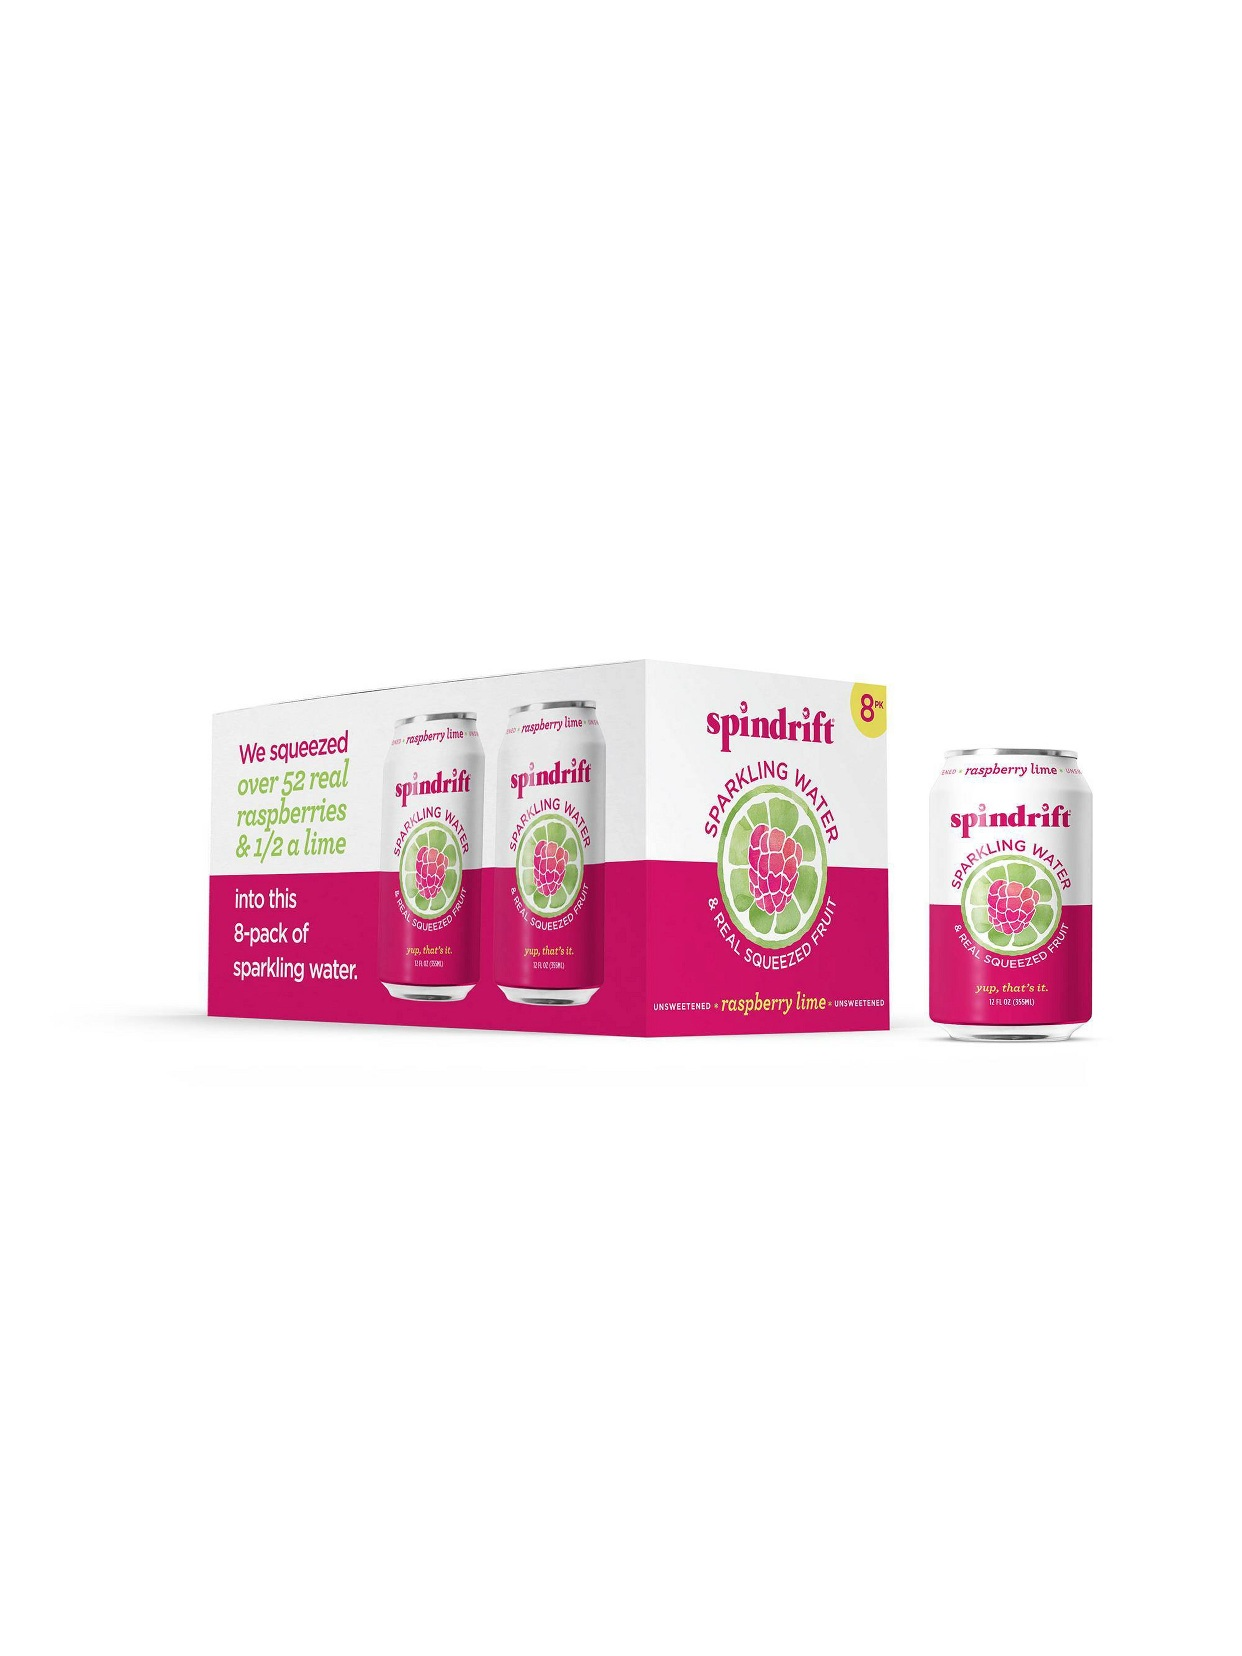 - AlllI havre to say about this drink is YUM! It's only 9 calories and I'm already addicted after only drinking it for a few days. Anything that will help kick the soda habit am I right?Find it here.